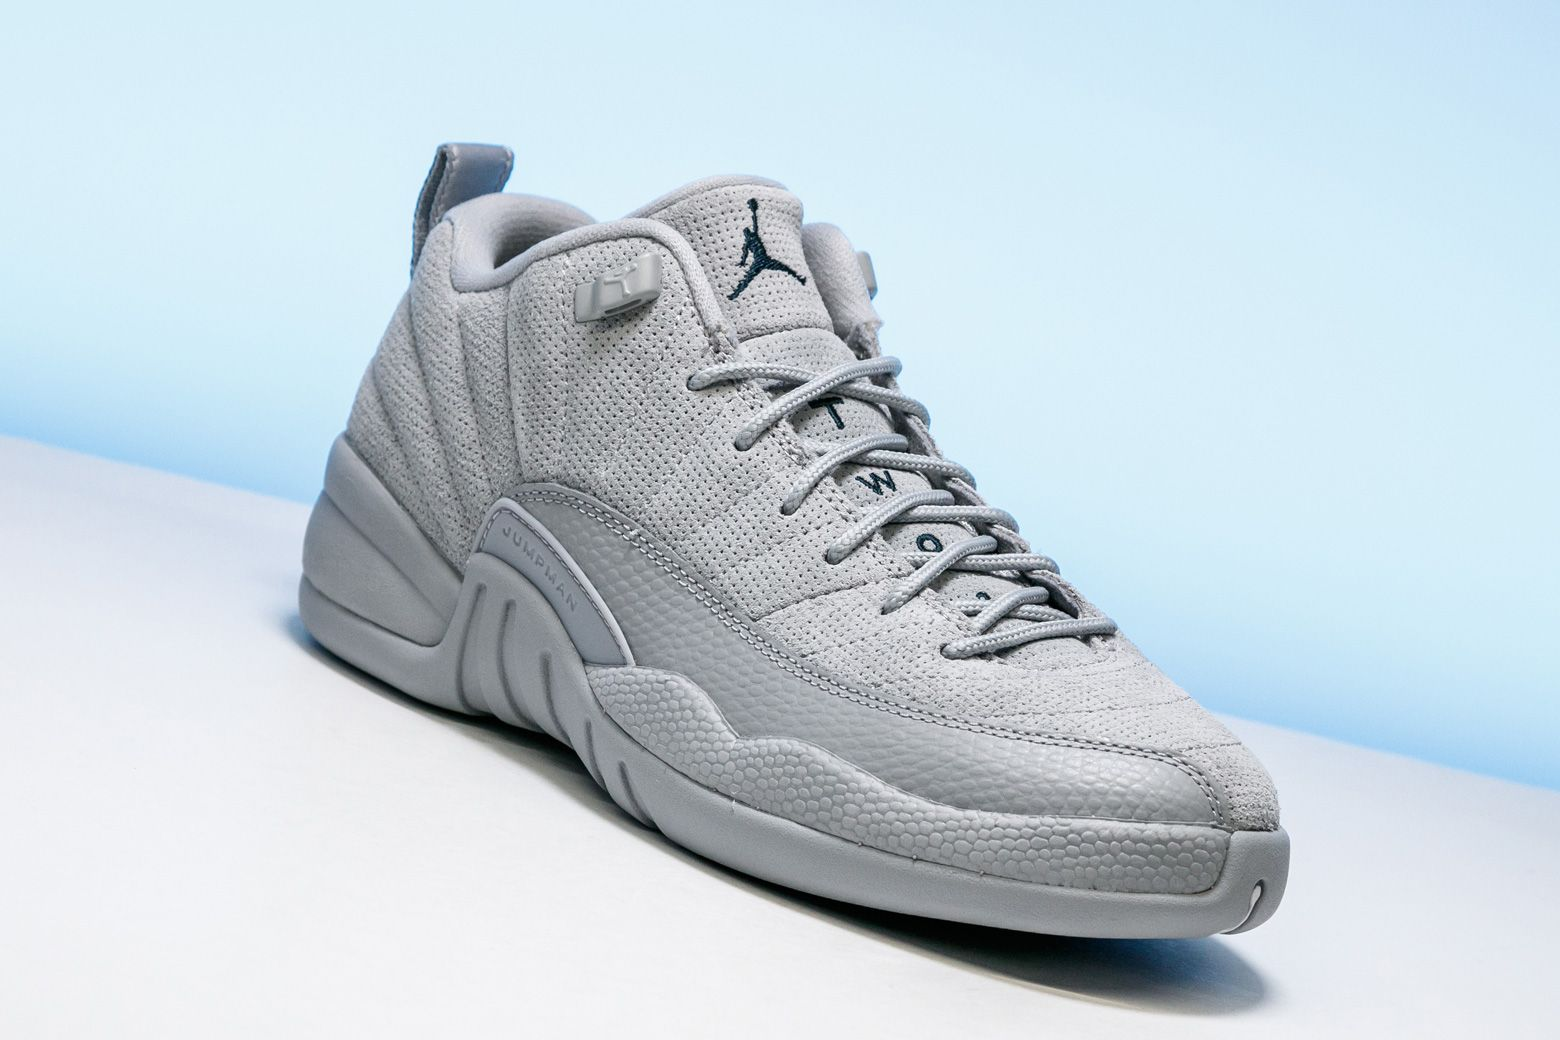 online store 7bc2b b67fe Jordan Brand drops the top on the Air Jordan 12 with this